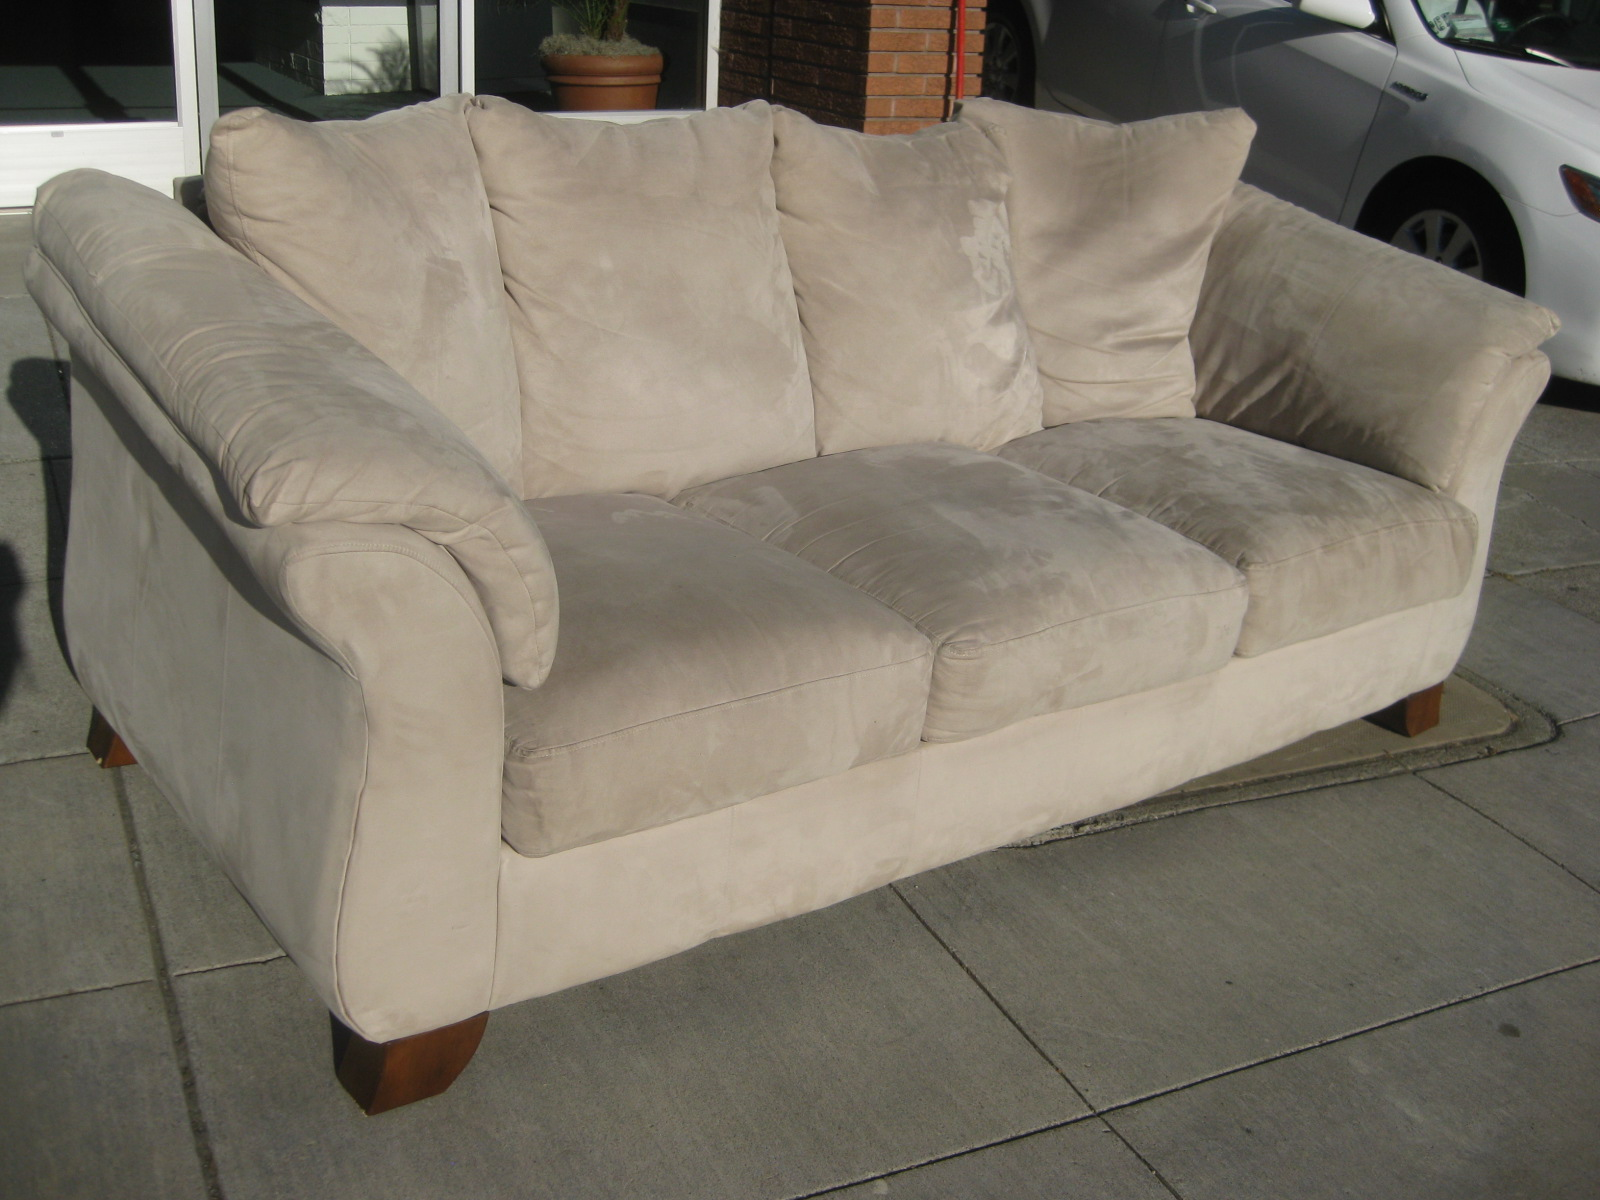 SofaMicrosuedeBeige Ffo Home Furniture Sofas on discontinued pa house furniture, big lots furniture, ashley furniture, cabela's furniture, home stretch furniture,